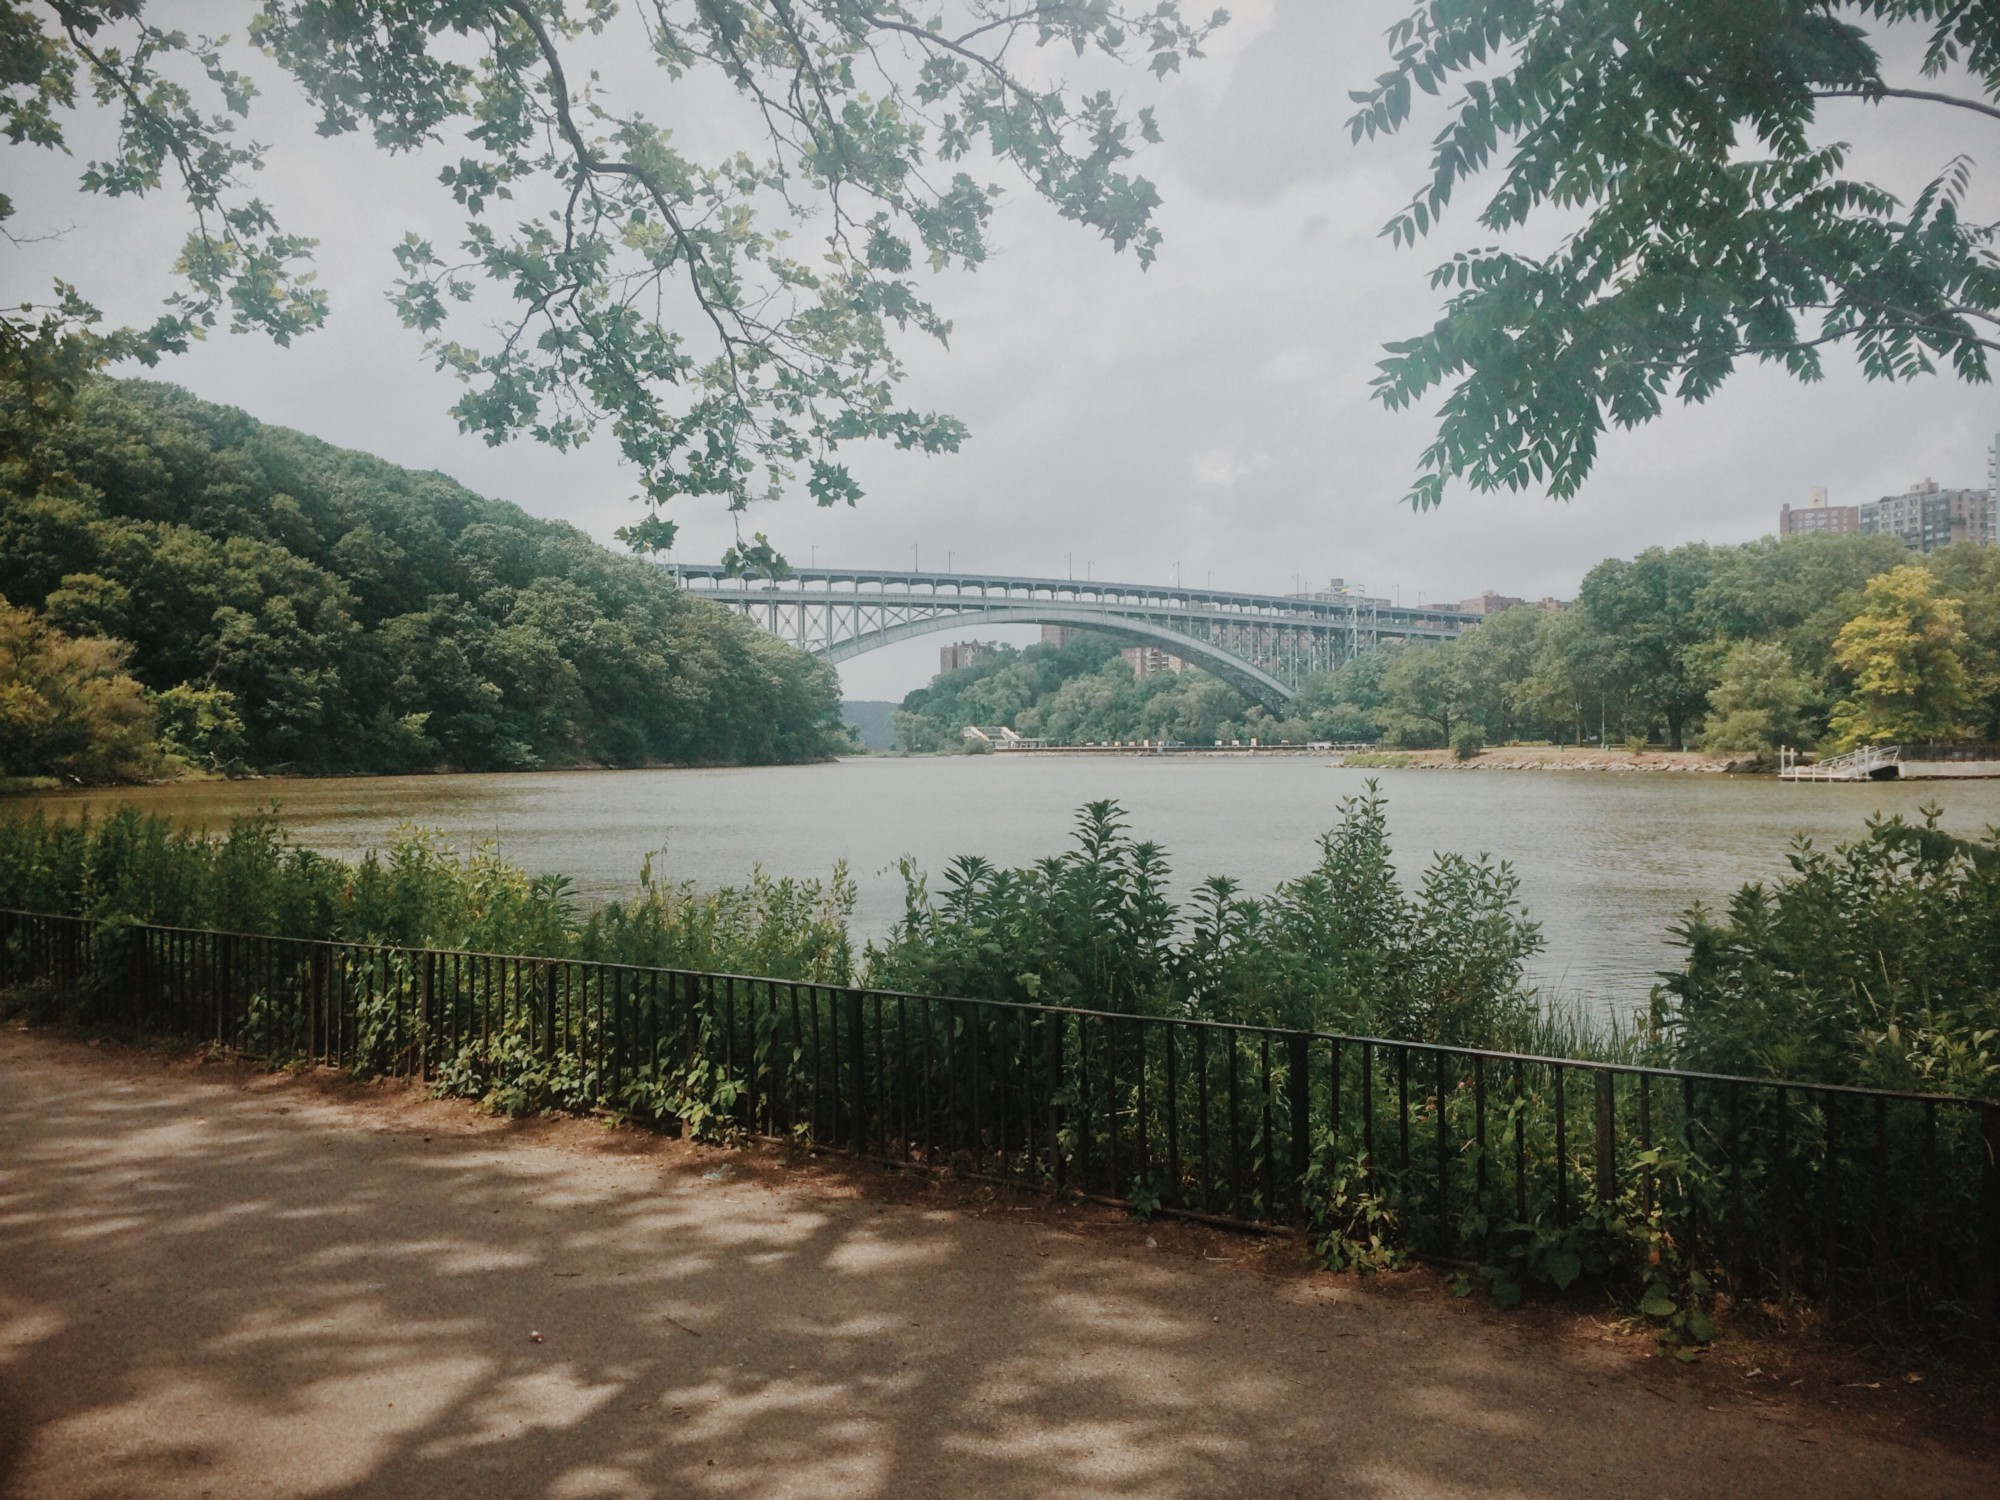 A Bridge Too Far Urban Explorations Medium The Next Diagram On Right I Have Cut Through Suspension Magnificent Steel Arch Inspires As Much Awe Today It Must At Henry Hudson Bridges Opening In 1936 And Lush Surroundings Hint